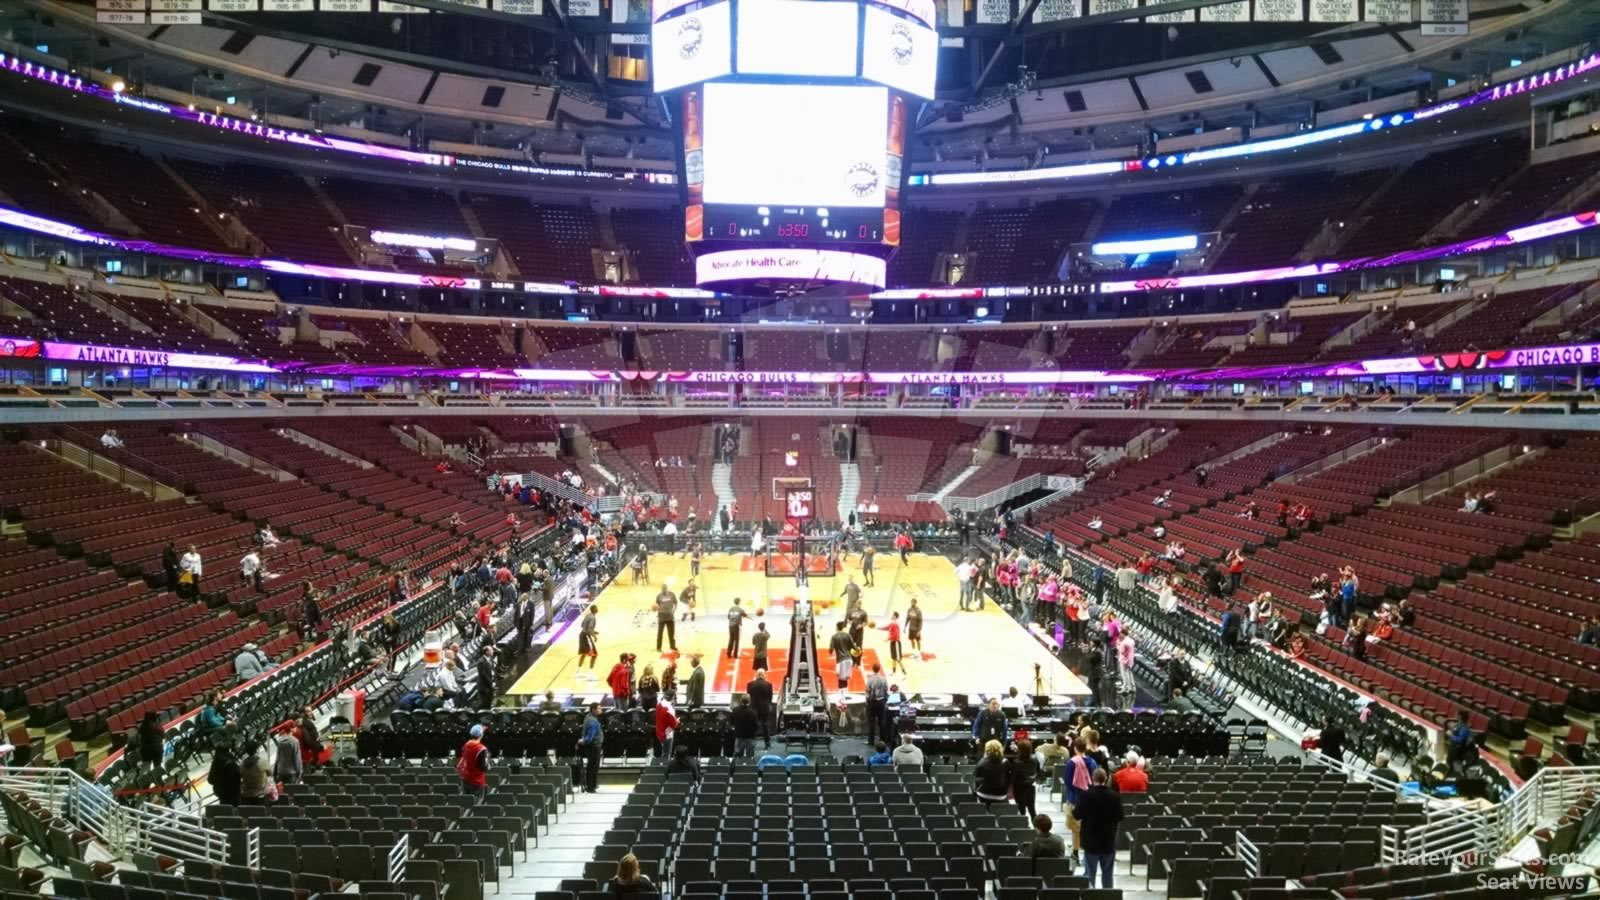 United Center Section 117 - Chicago Bulls - RateYourSeats.com